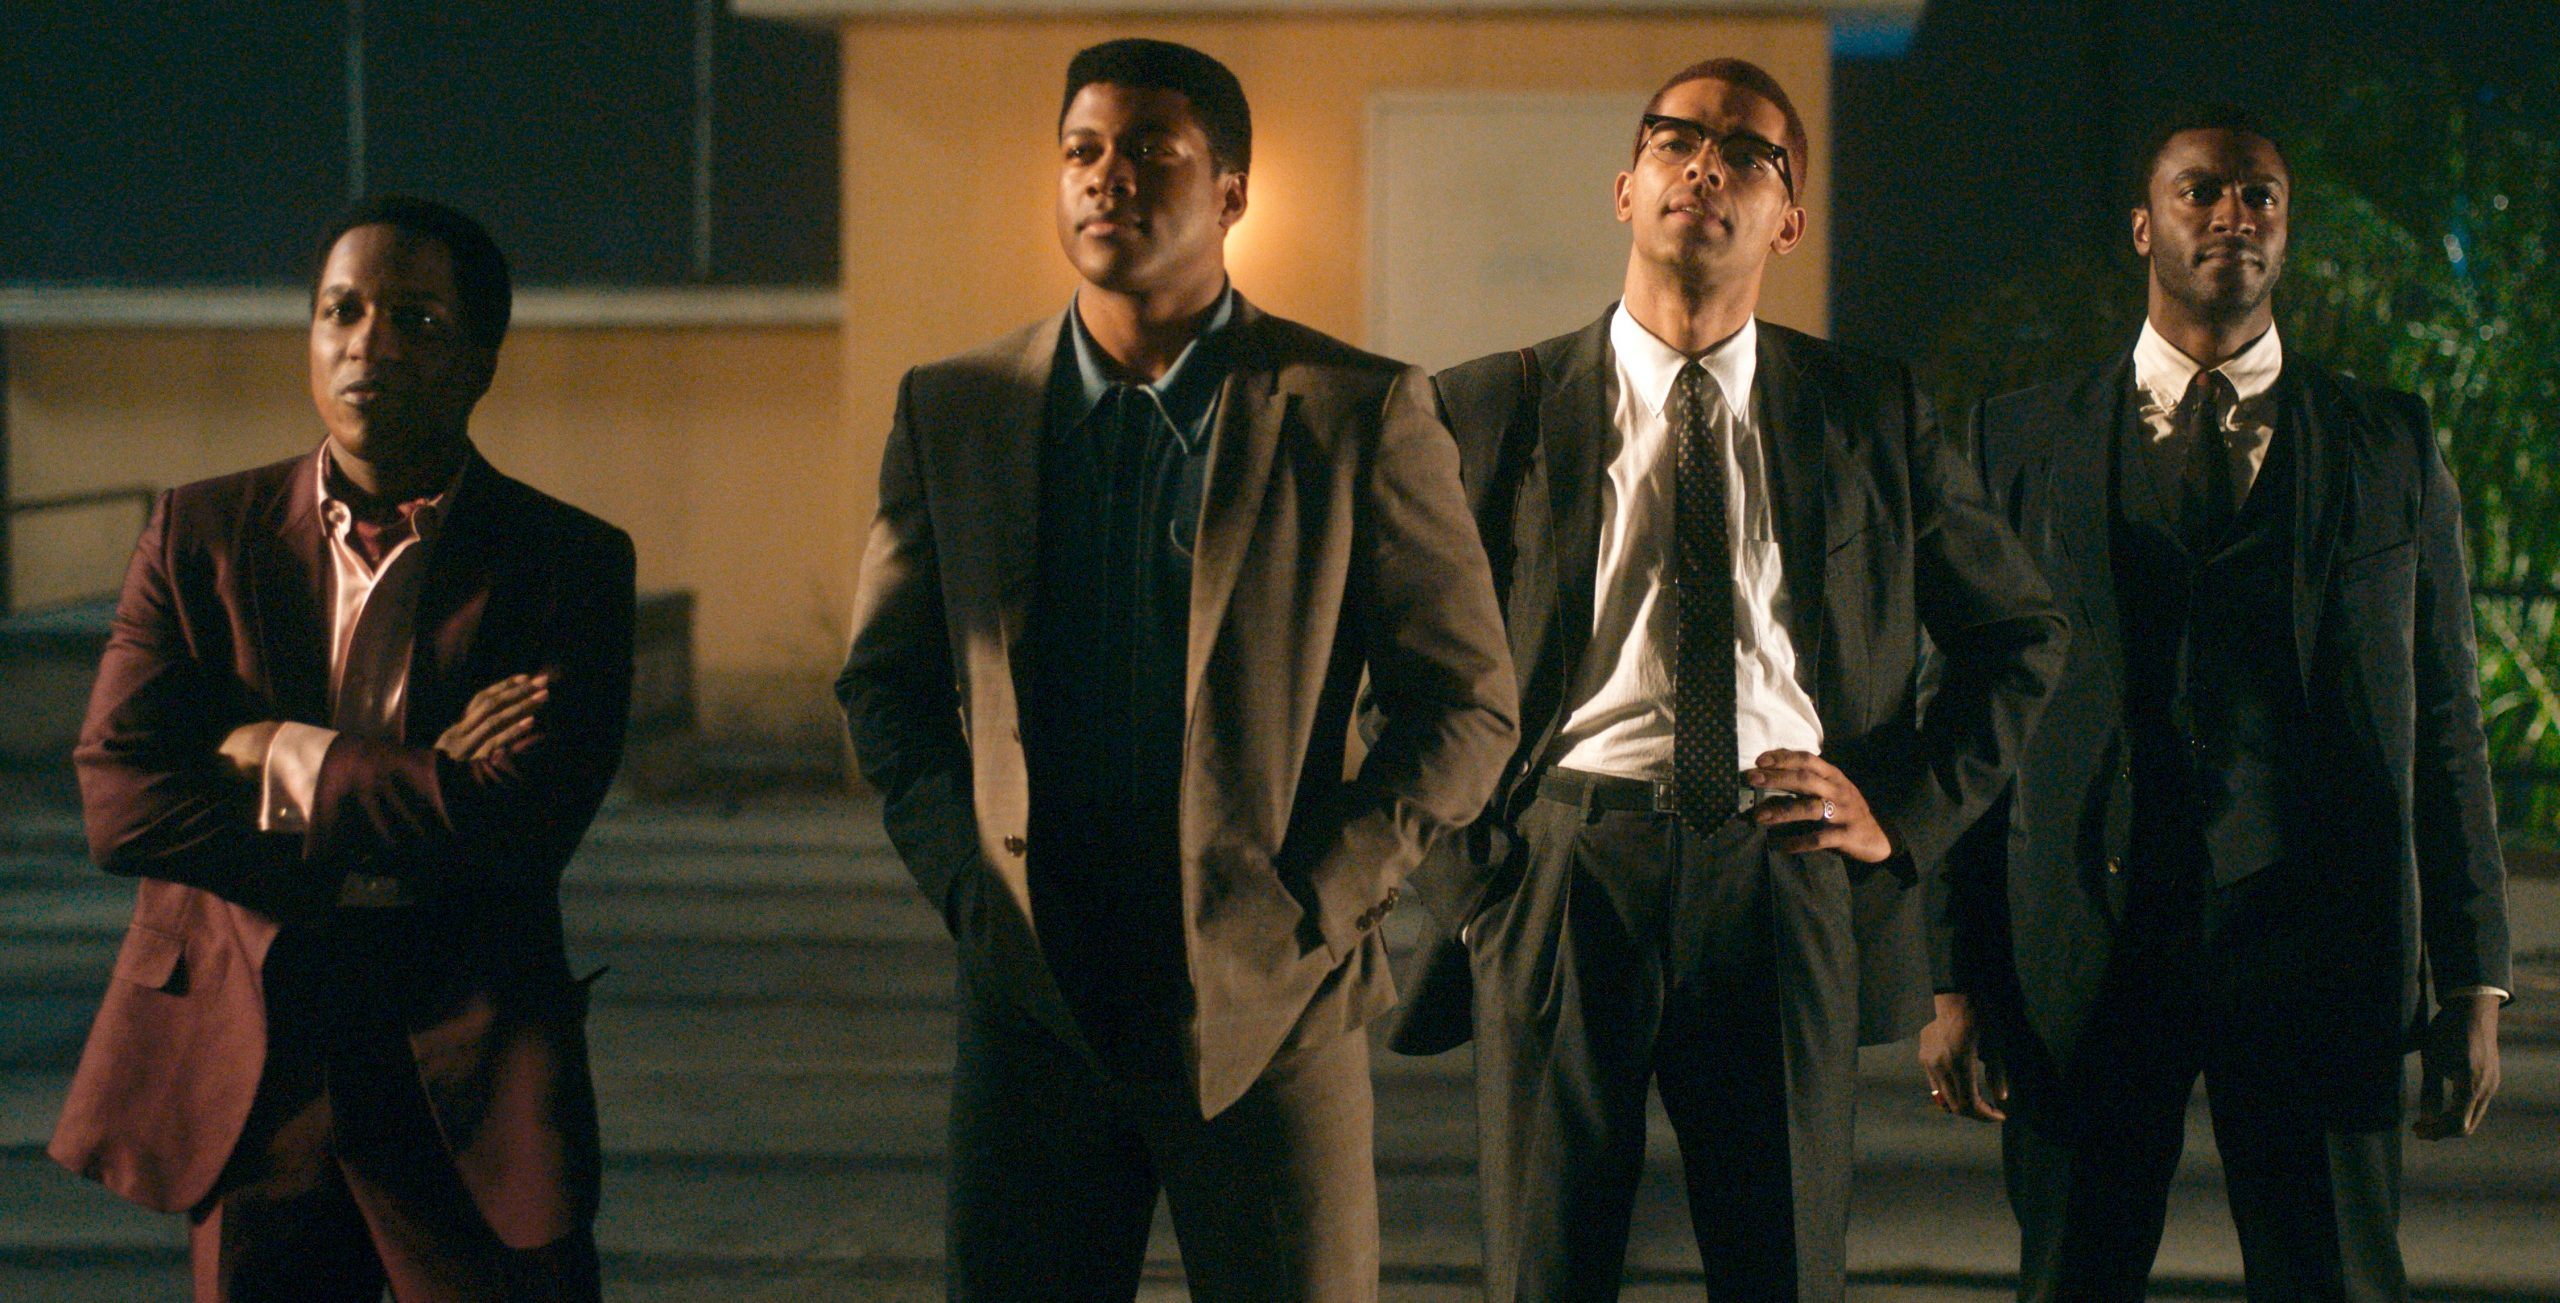 "Great men at night, looking for the light. 'One Night in Miami"" stars (L to R) Leslie Odom Jr. as Sam Cooke, Eli Goree as Muhammad Ali,, Kingsley Ben-Adir as Malcolm X, and Aldis Hodge as Jim Brown. (Photo courtesy of Amazon Studios)"